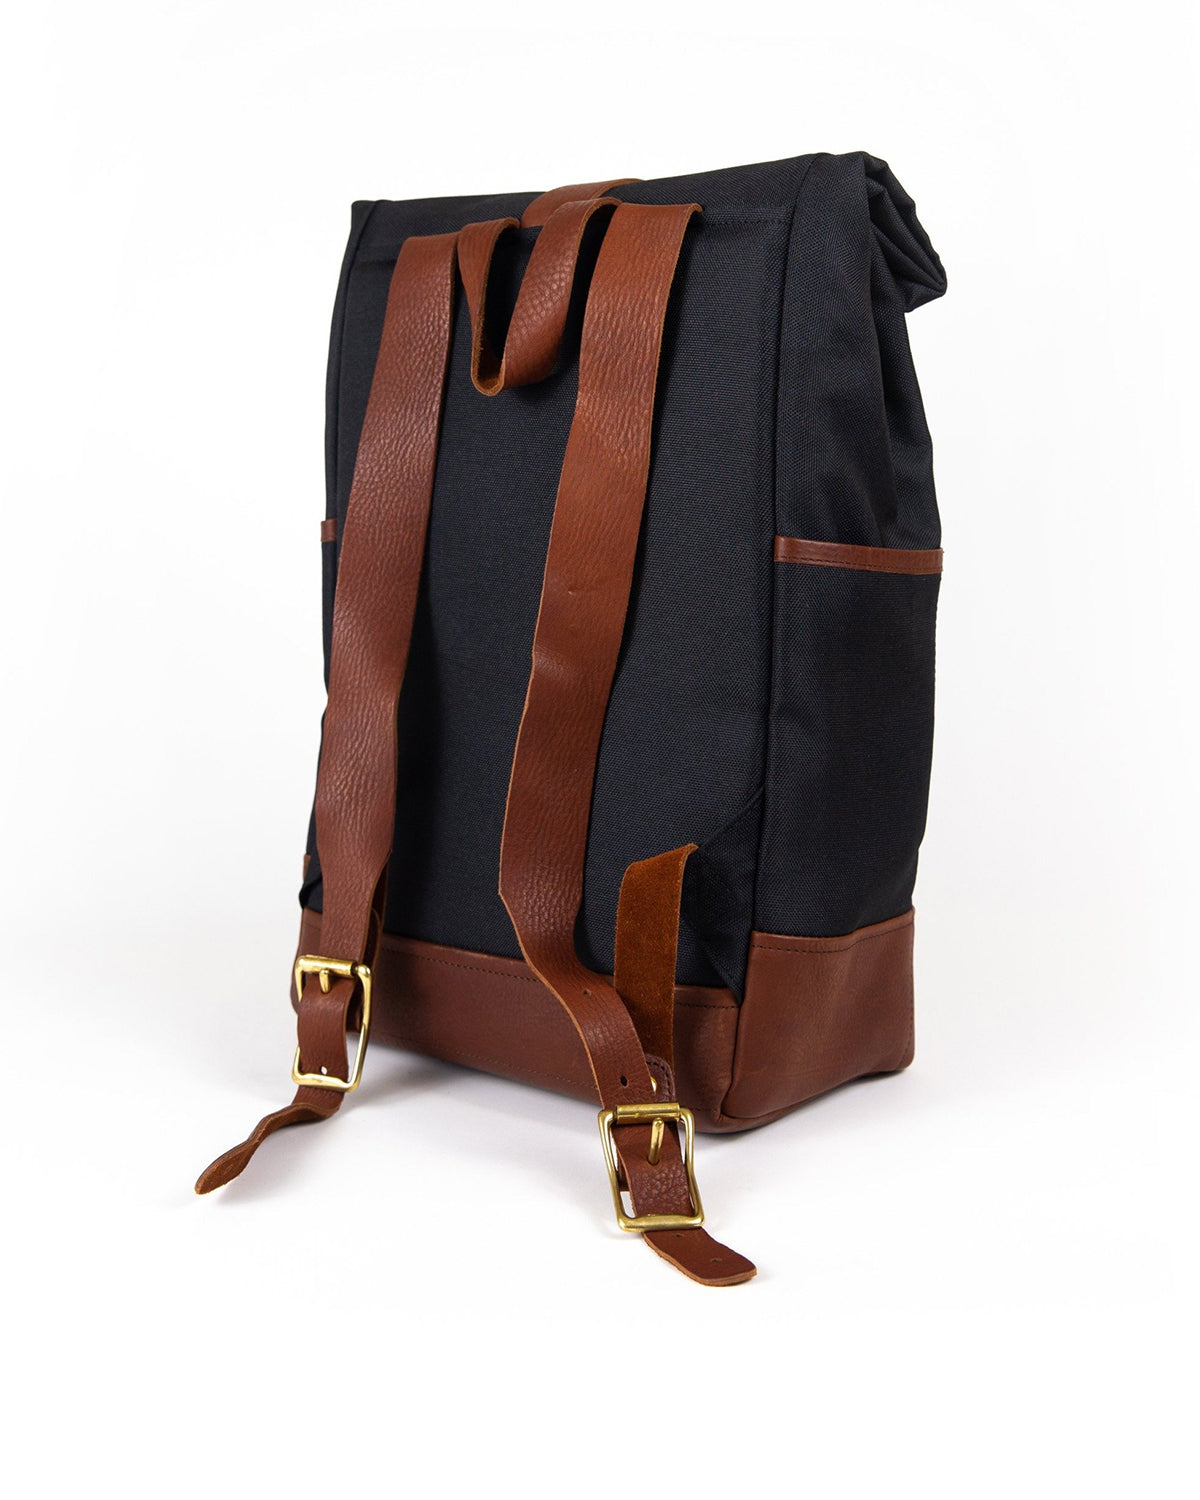 Daypack in Black with Brown Leather